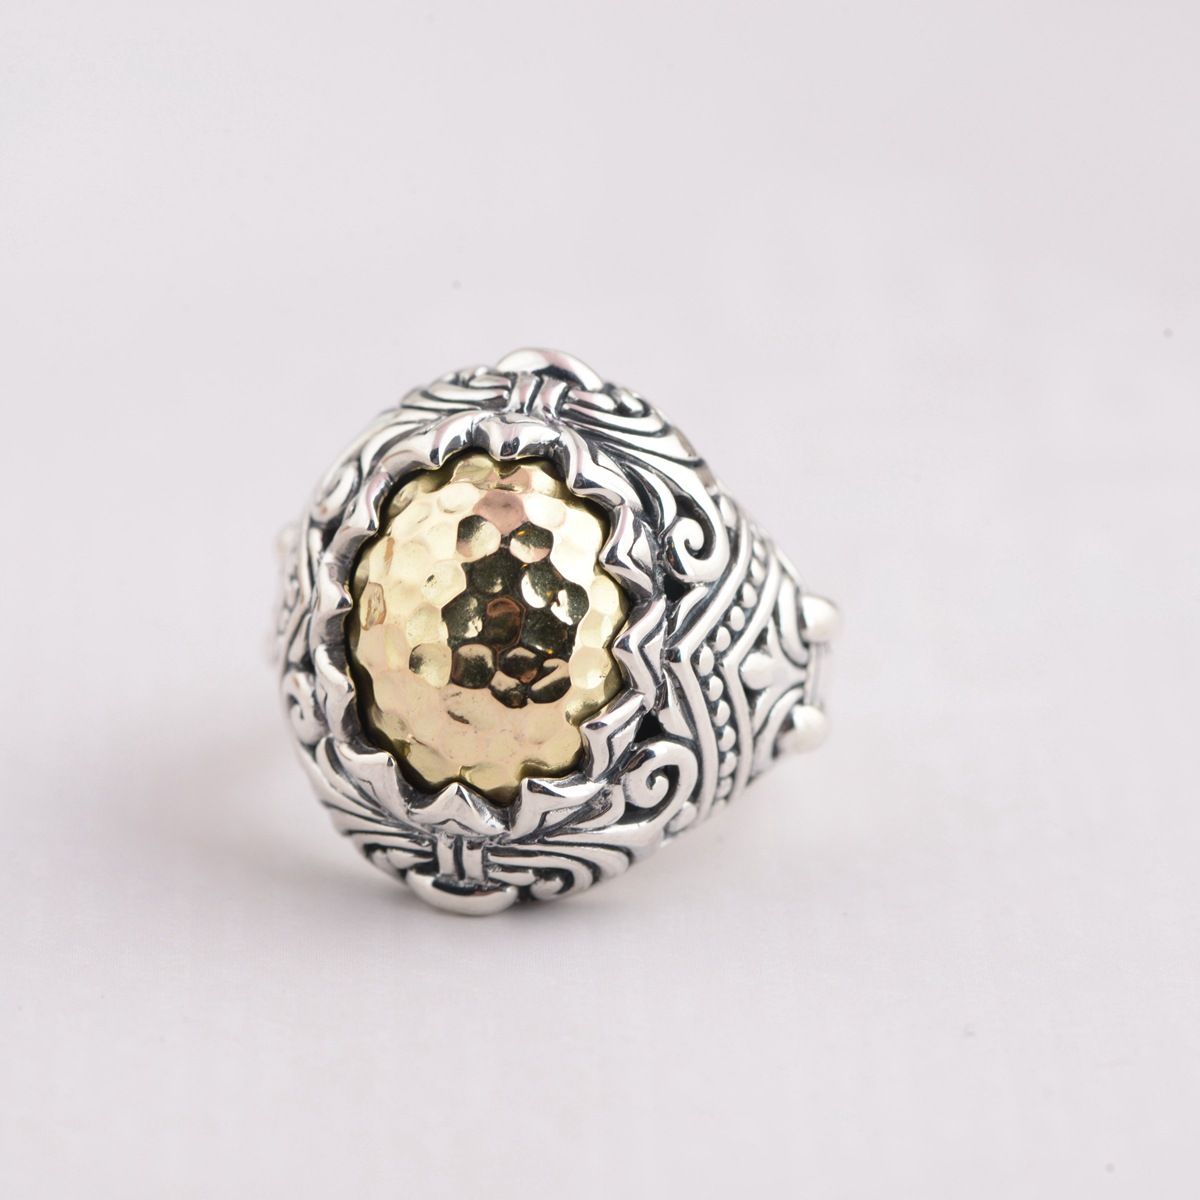 S925 Sterling Silver Silver Ring female exquisite exquisite wholesale personality simple gifts s925 pure silver personality female models new beeswax